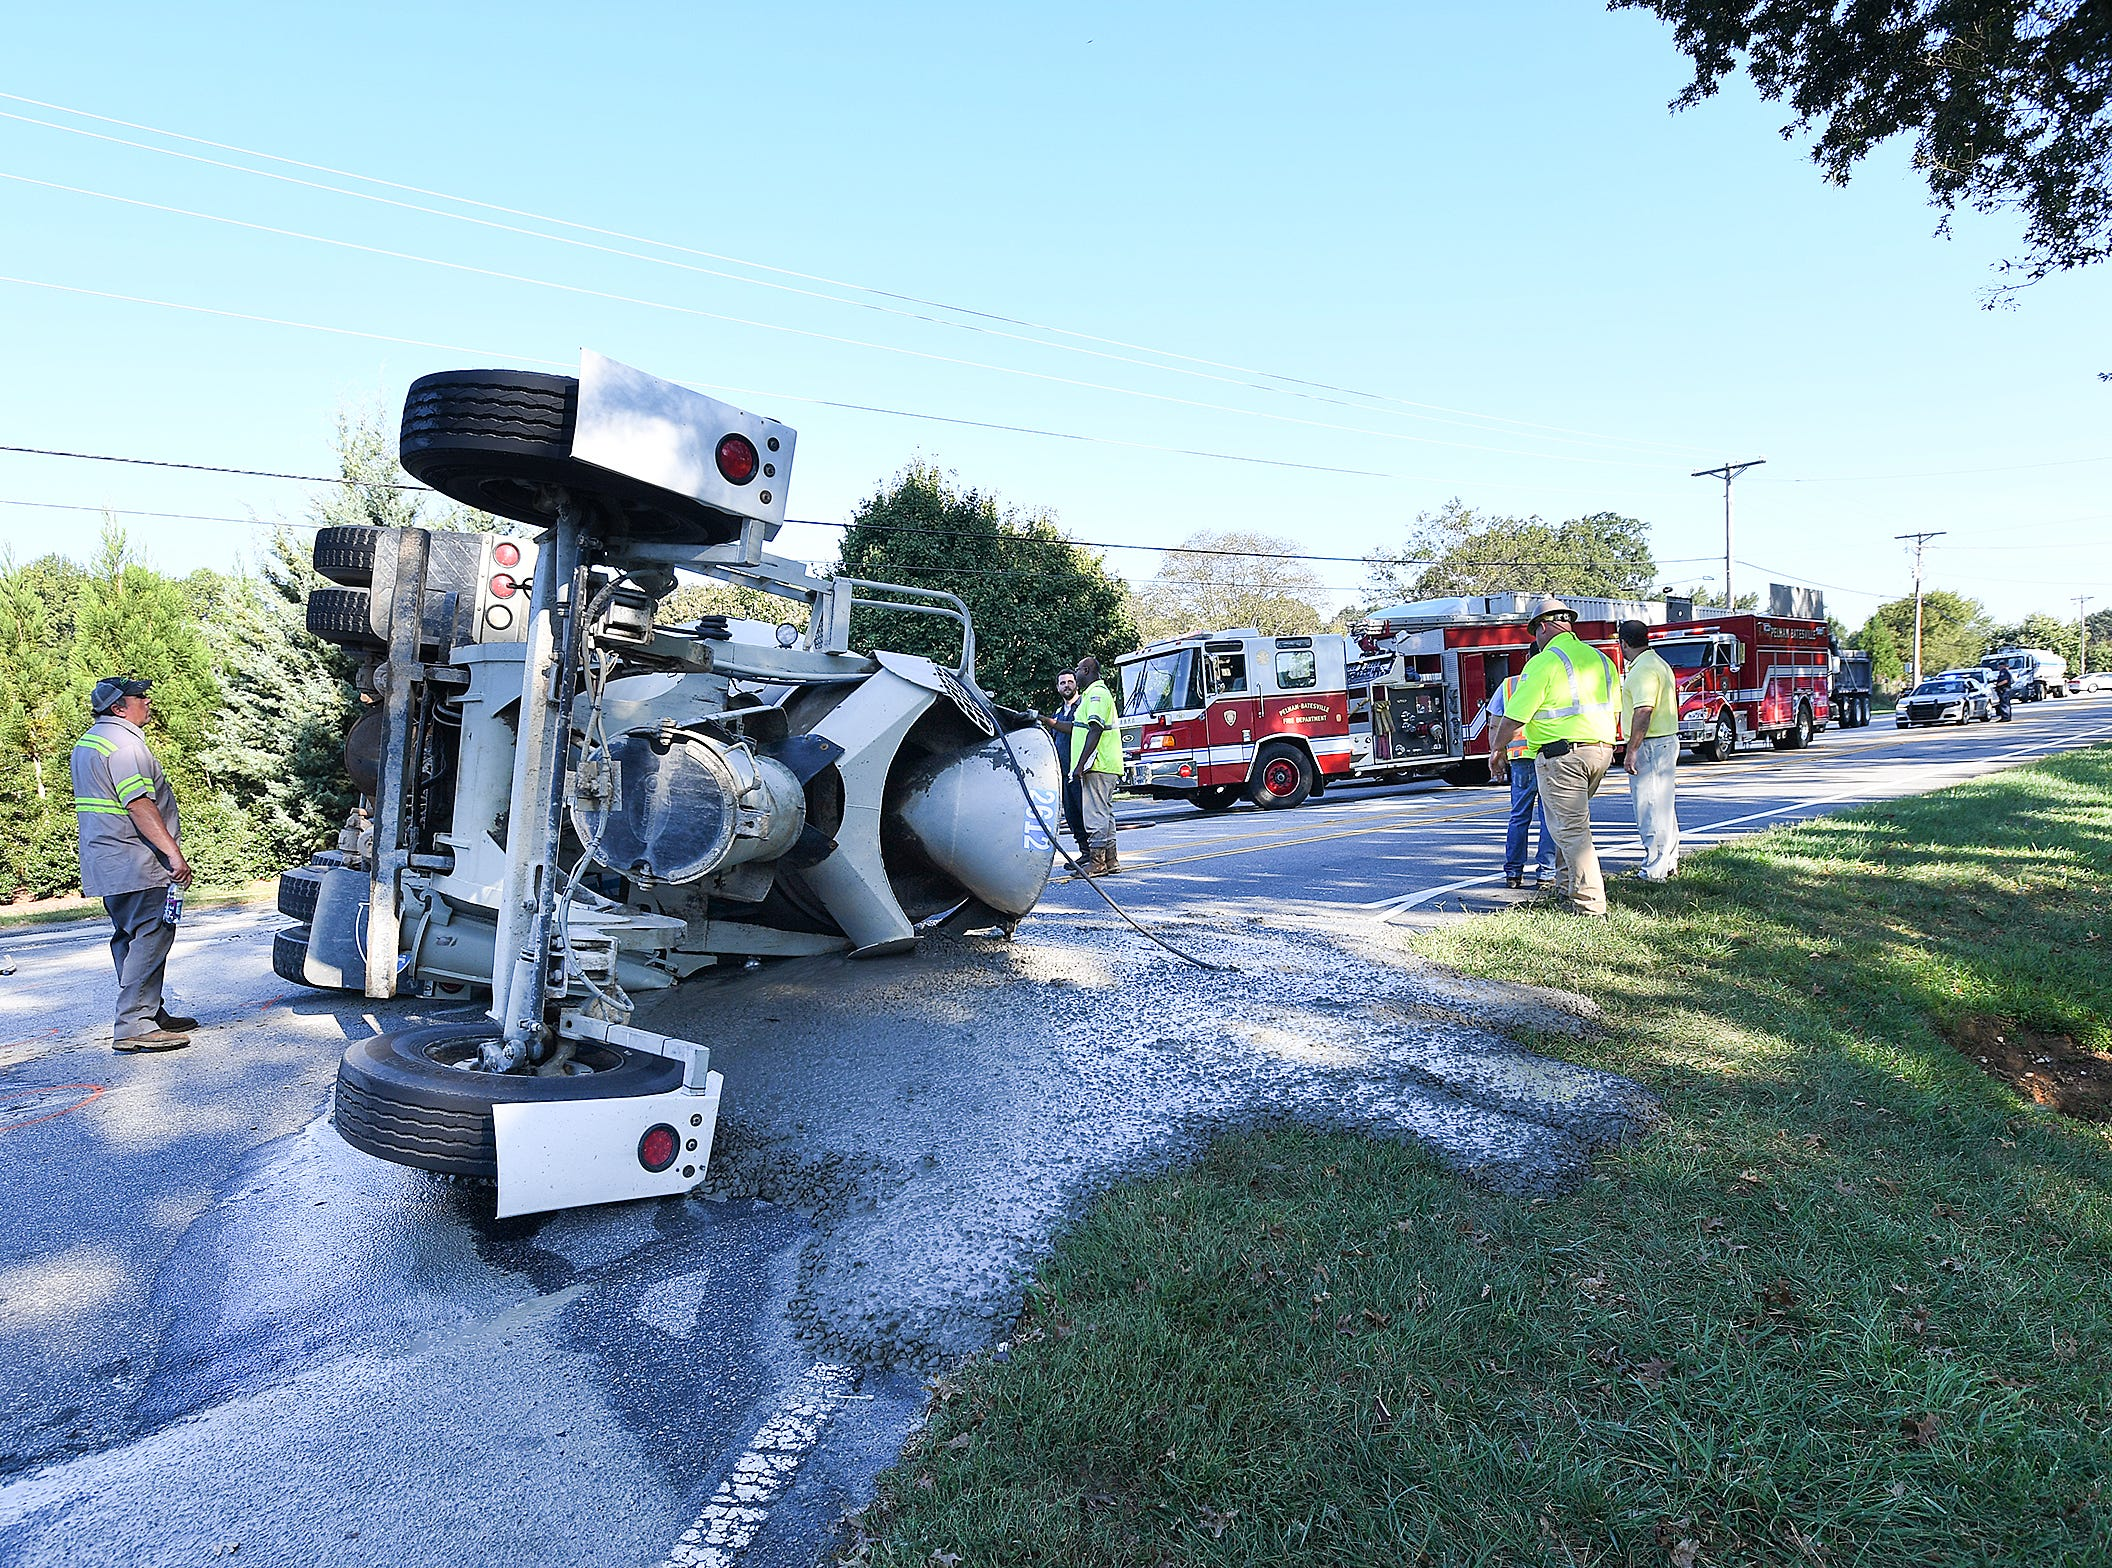 A cement truck overturned on South Carolina 14 at the entrance of Spalding Farm subdivision between Woodruff Road and and Interstate 85 on Thursday, Oct. 4, 2018.